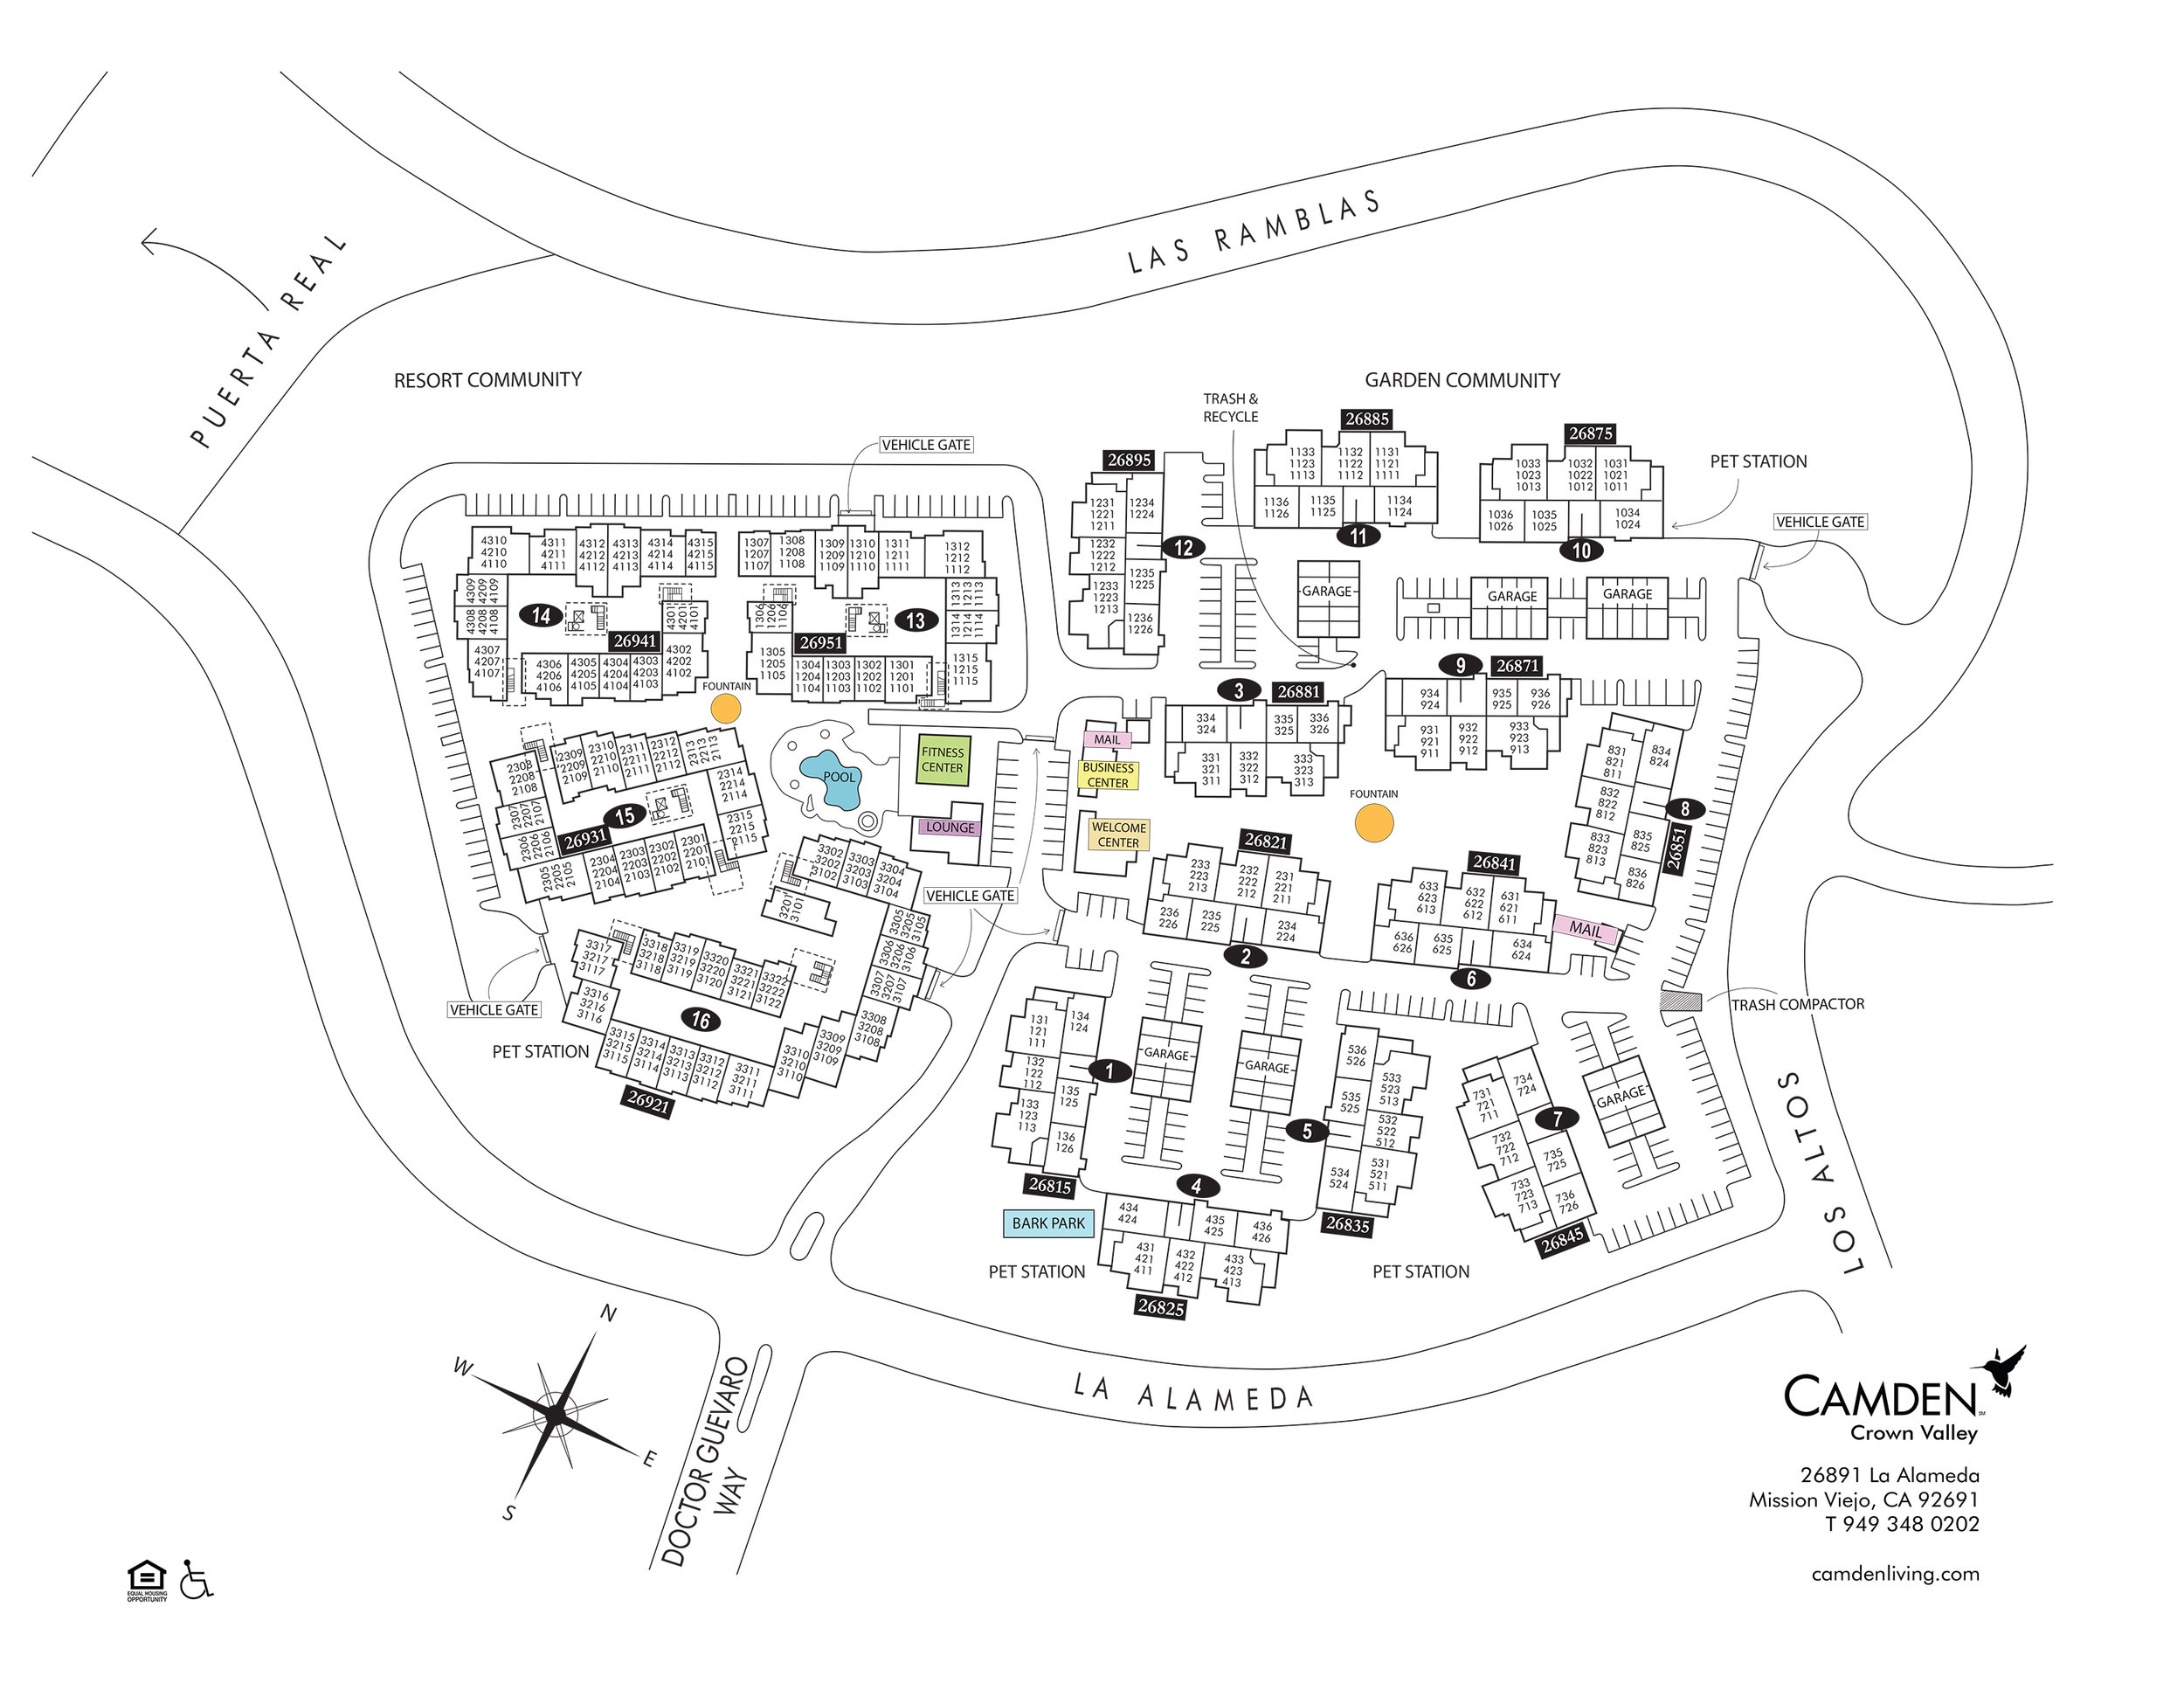 camden-crown-valley-apartments-site-plan.jpg